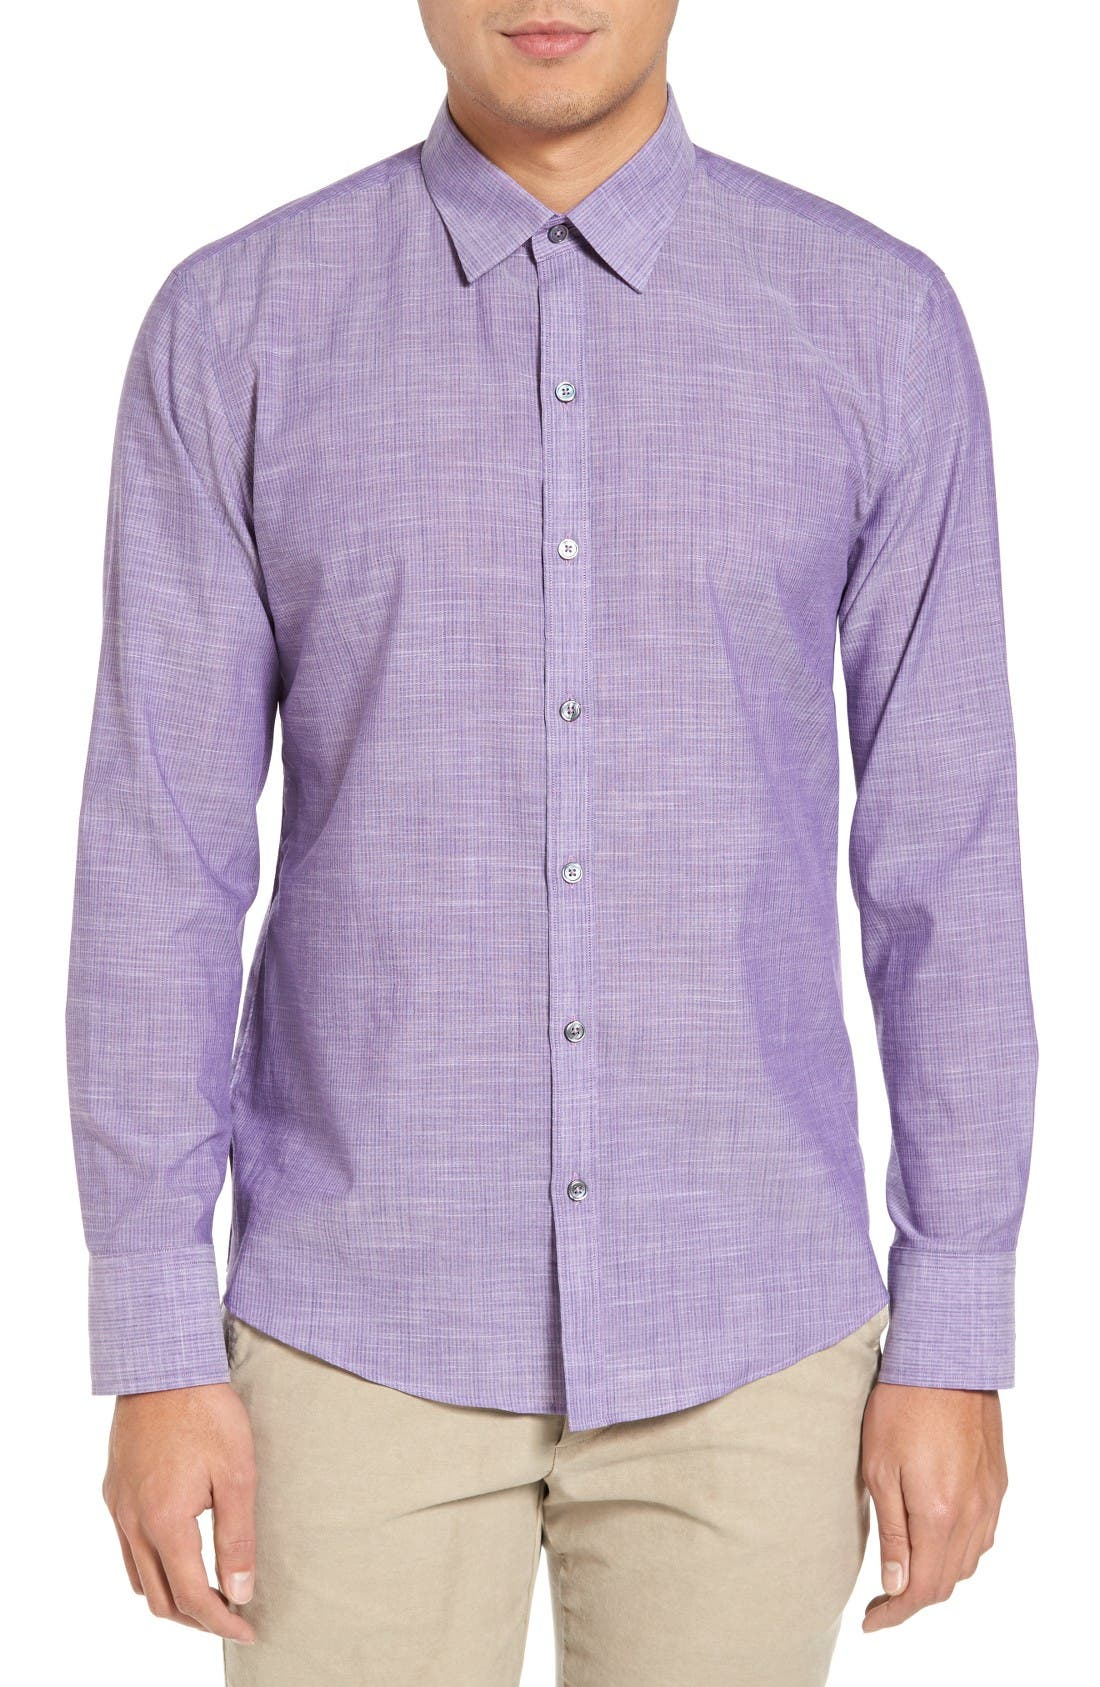 Snower Slim Fit Sport Shirt,                             Main thumbnail 1, color,                             Purple